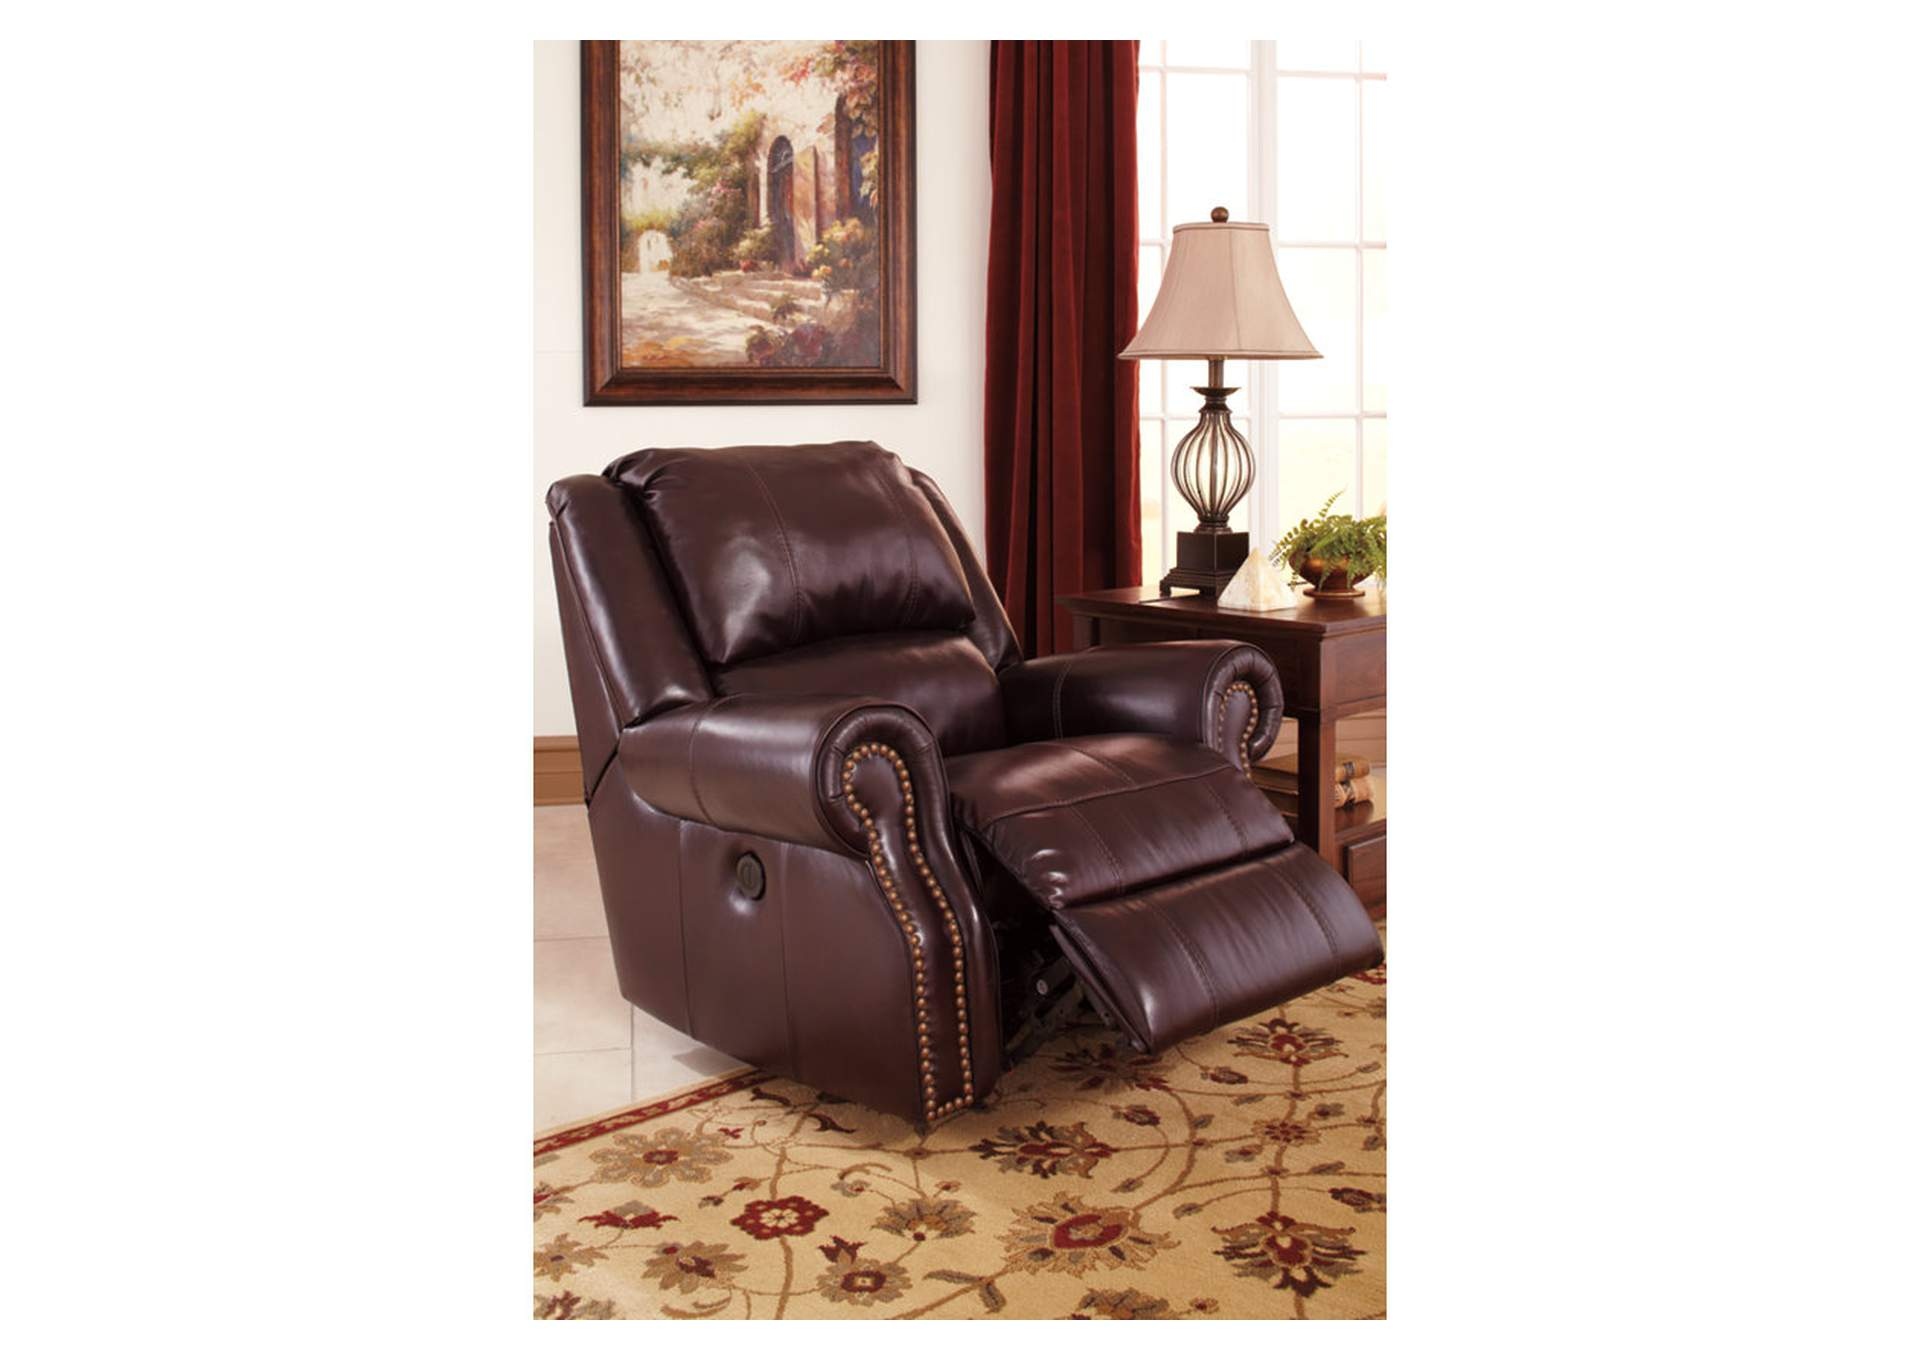 Walworth Black Cherry Power Rocker Recliner,Signature Design By Ashley